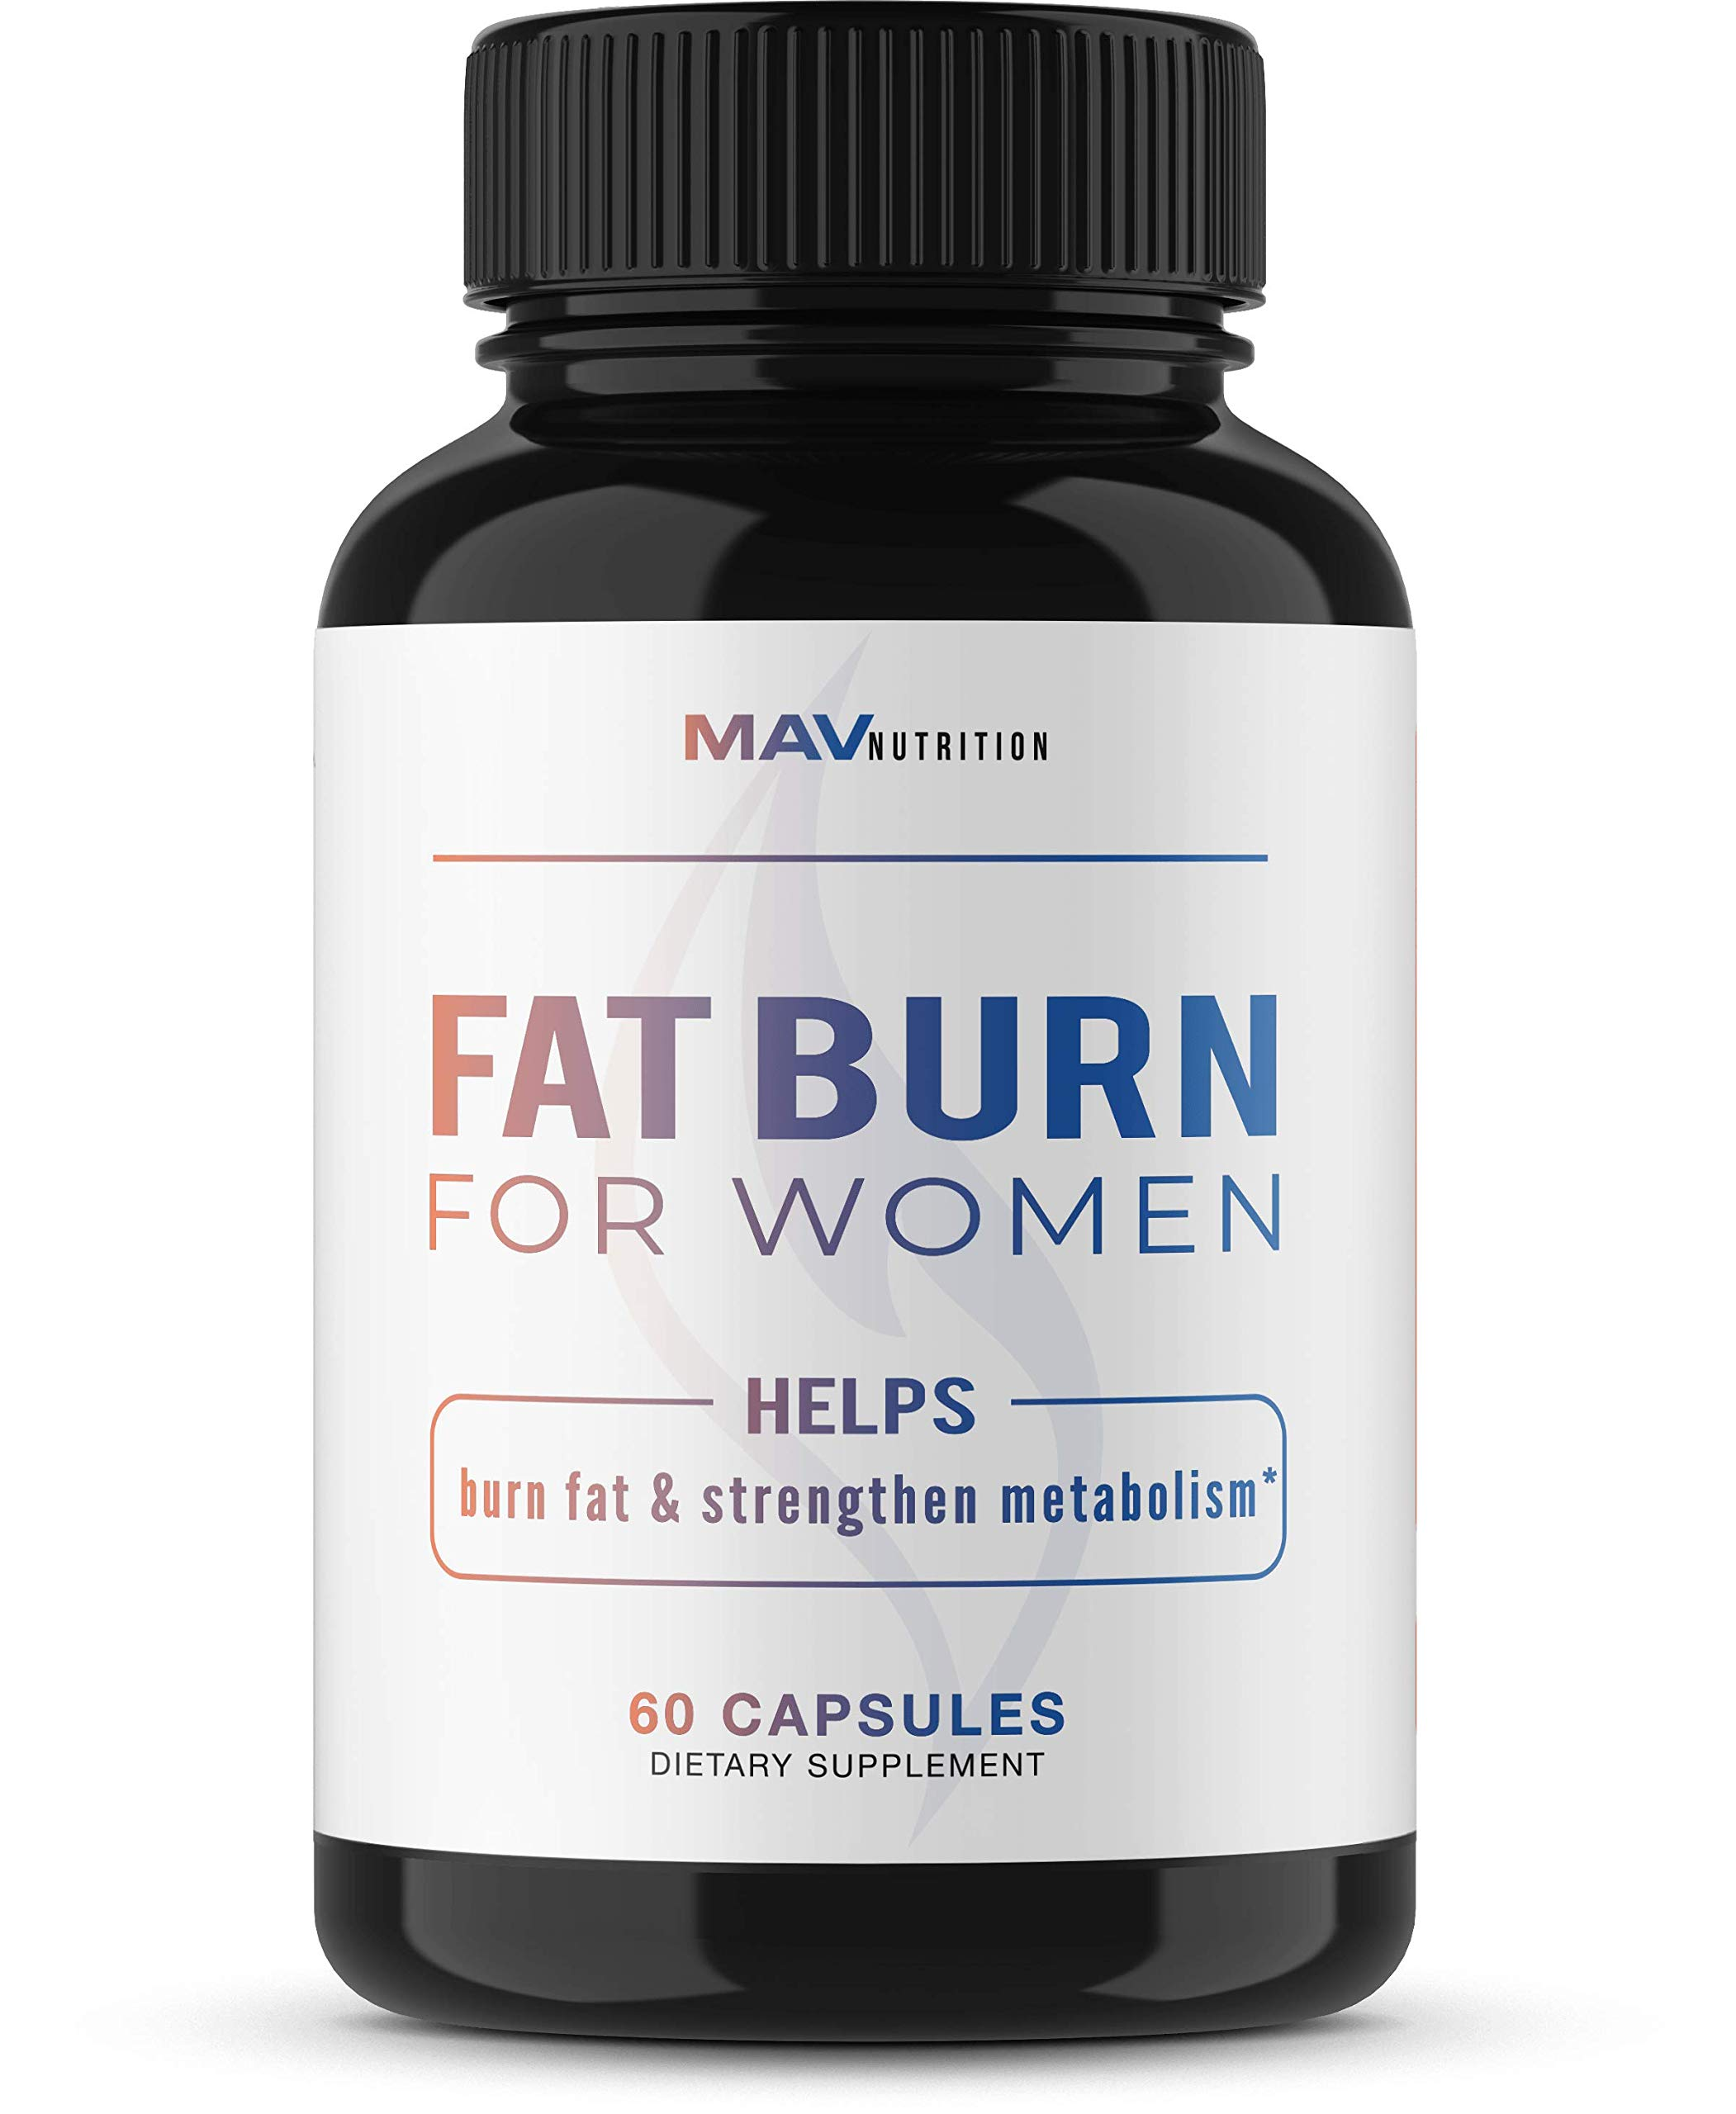 MAV Nutrition Womens Weight Loss Pills + Fat Burner for Appetite Suppressant, Non-GMO, Vegetarian Friendly Diet Pills, 60 Capsules by MAV NUTRITION